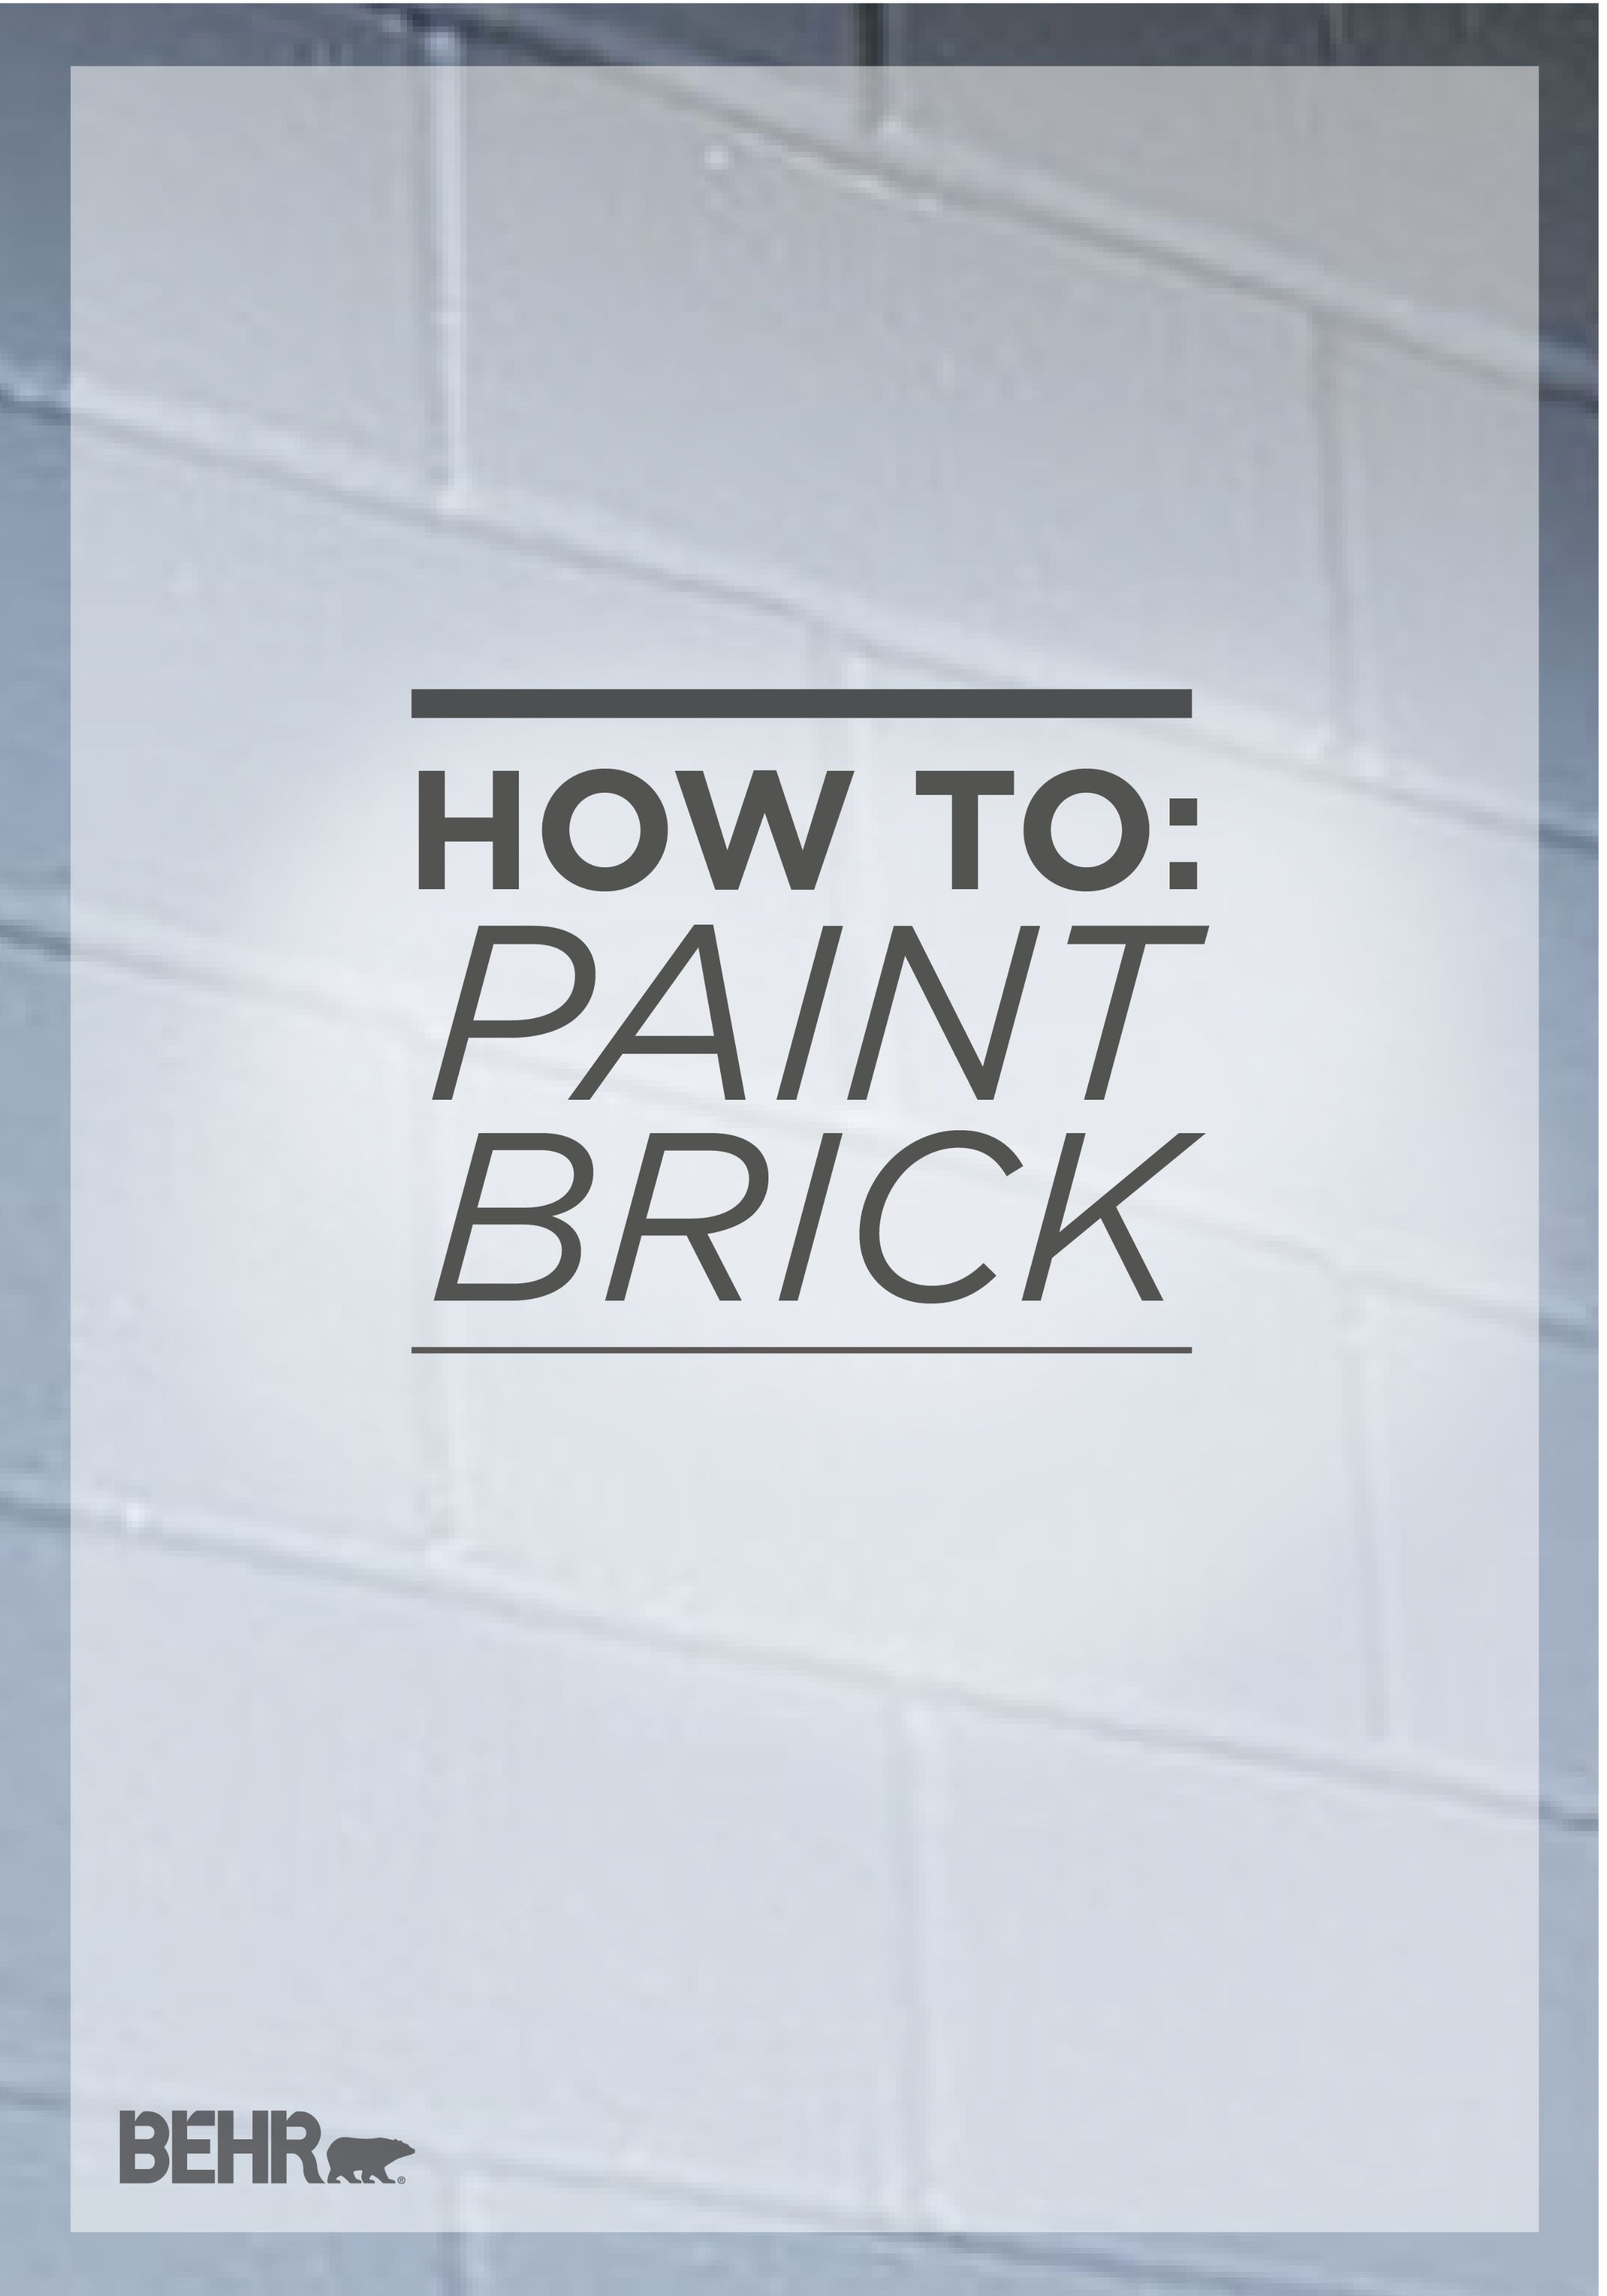 Do You Have An Exposed Brick Fireplace Or Exterior That Needs An Update Behr Shows You Step By